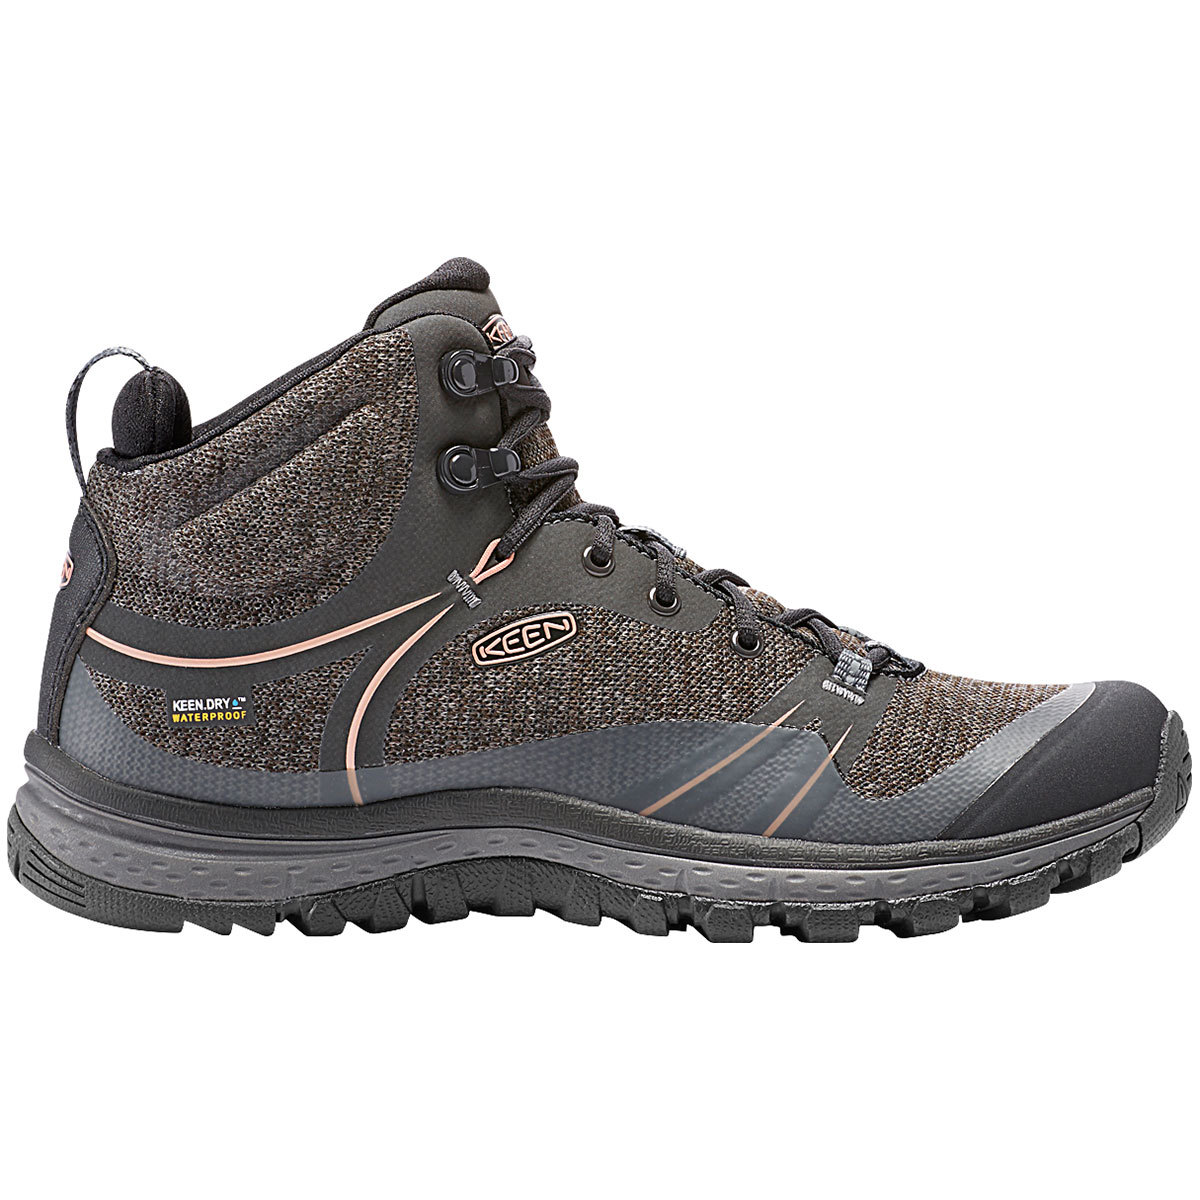 Keen Women's Terradora Mid Waterproof Hiking Boots, Raven - Black, 11